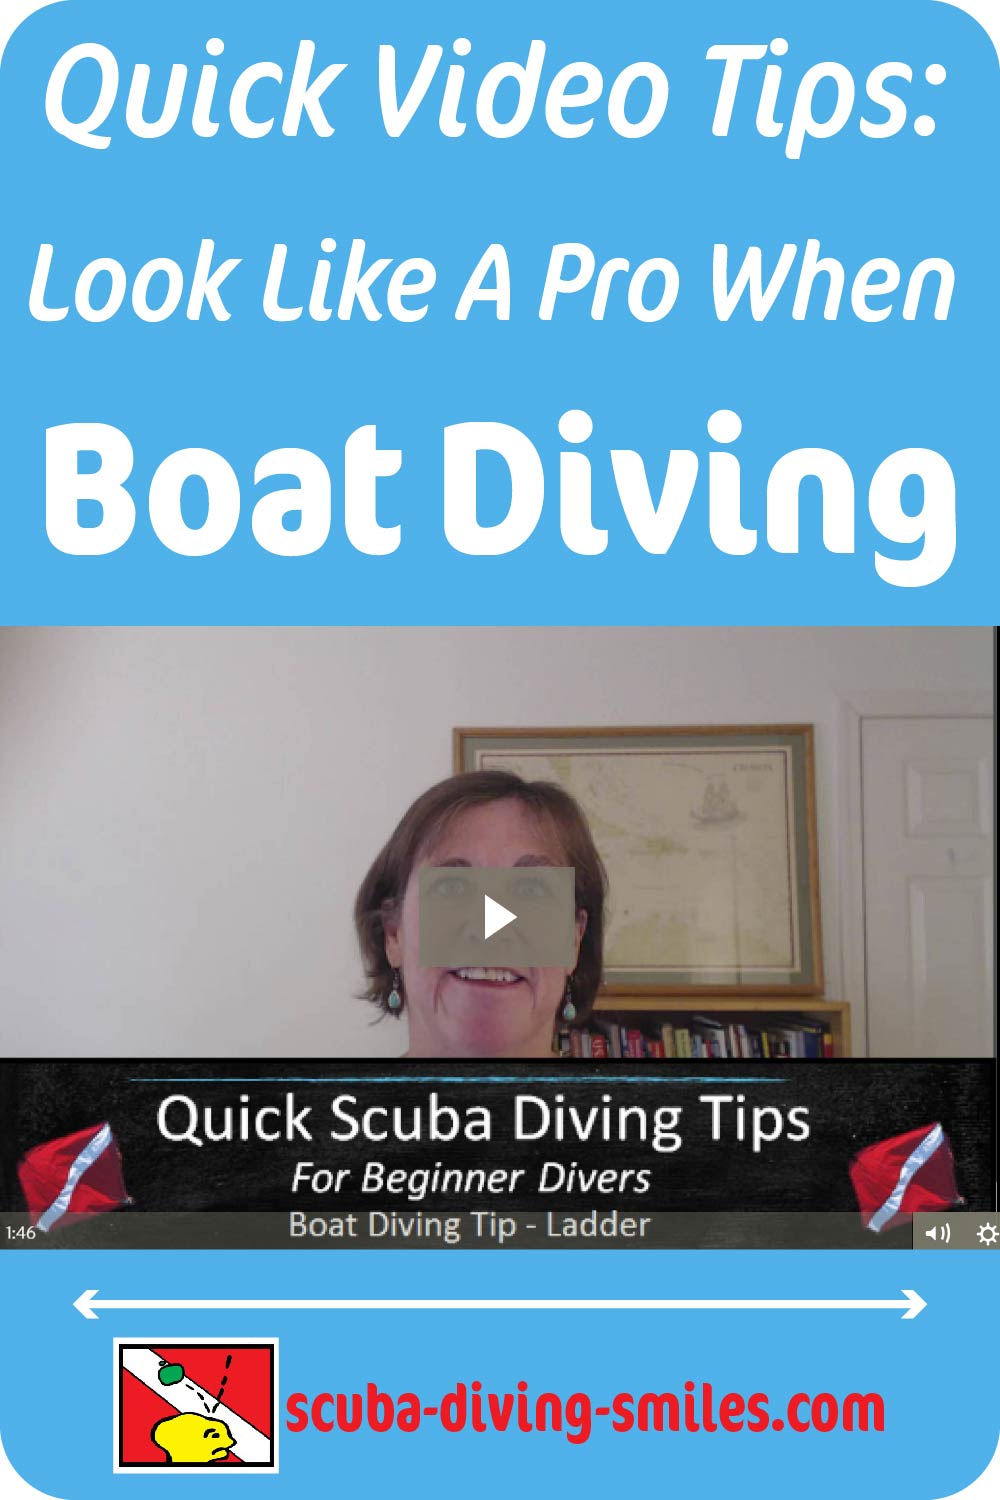 Quick video of boat diving tips for new scuba divers.